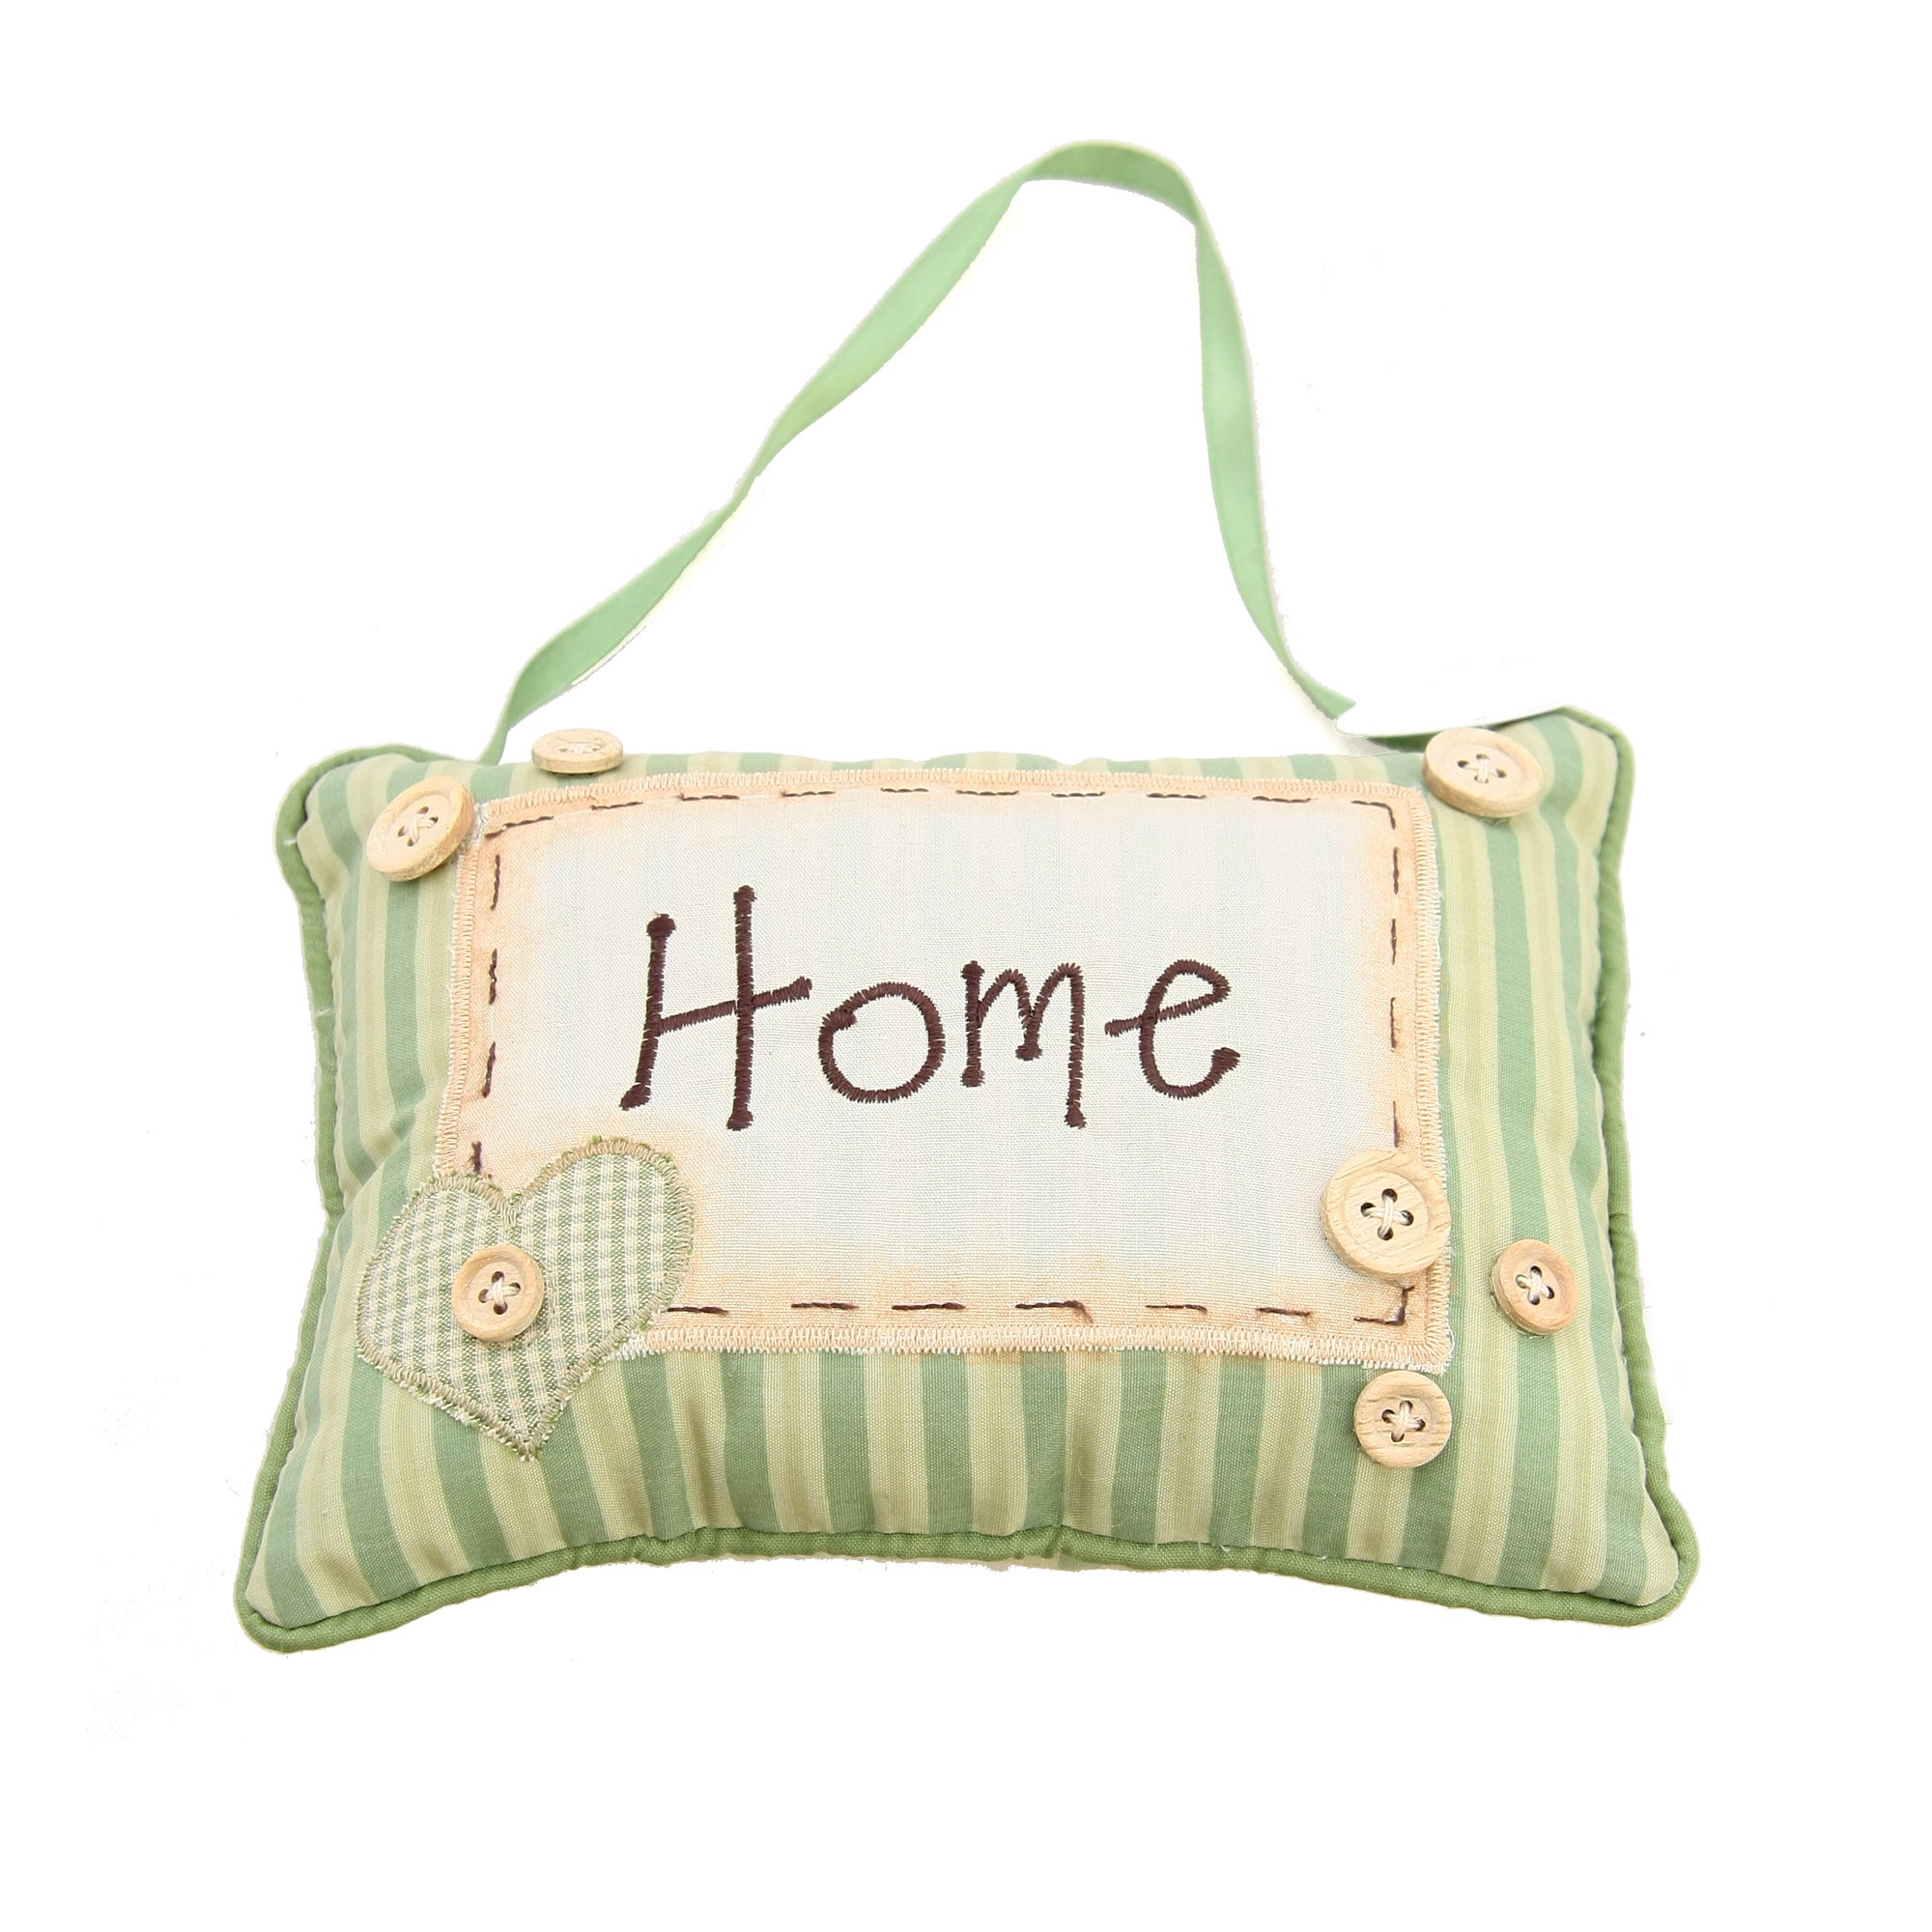 Key Lime Collection Fabric Home Cushion Hanger